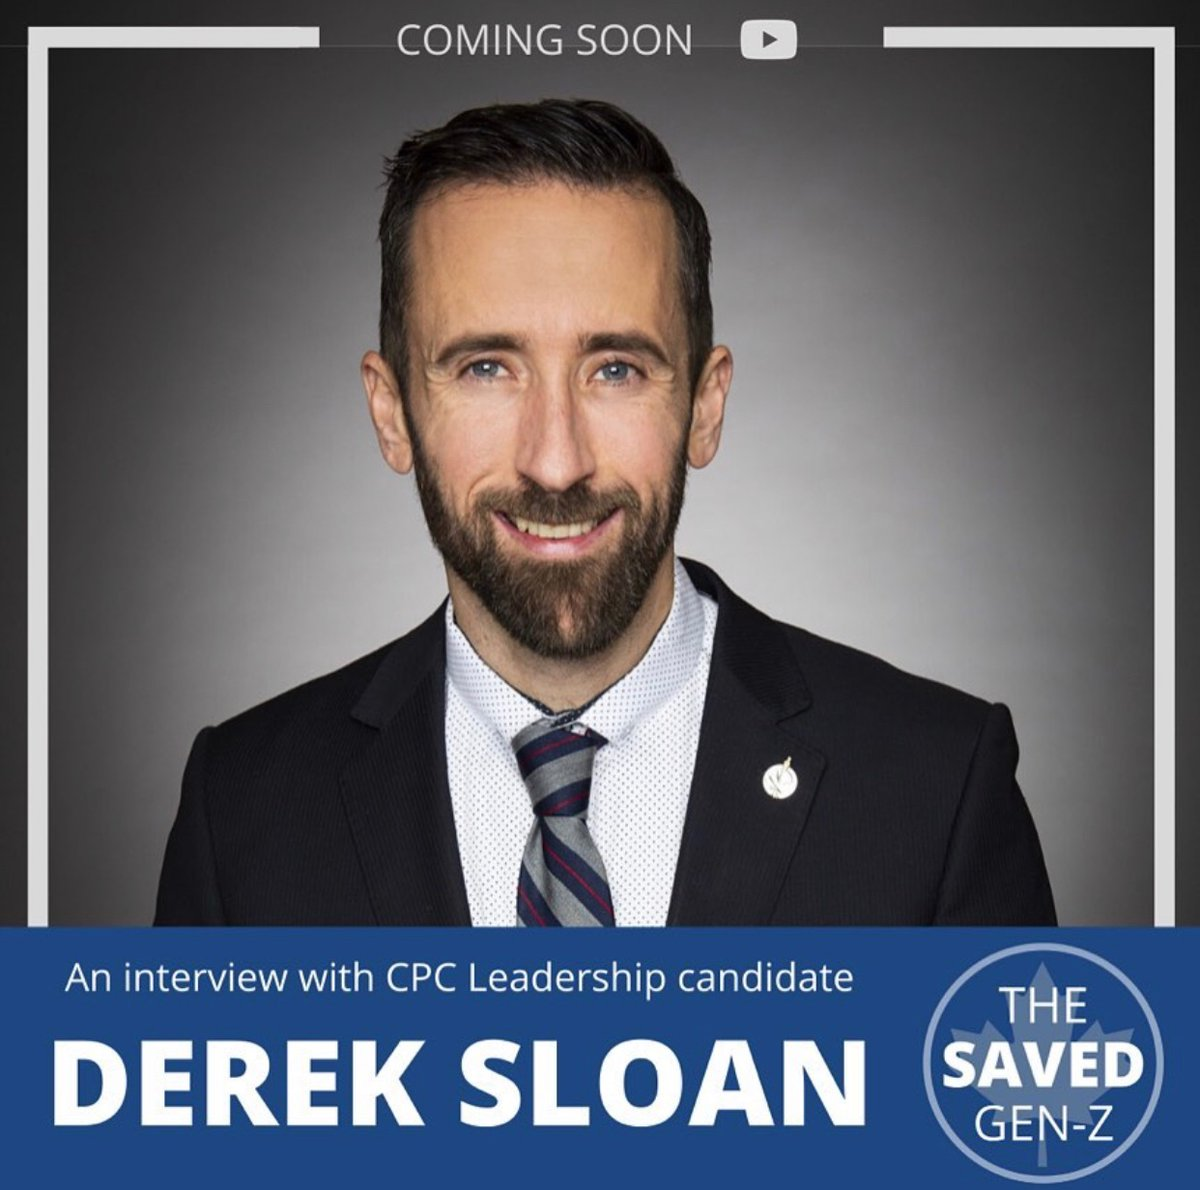 Our first Video drops today! It will be a one on one interview with Conservative Leadership Candidate Derek Sloan! STAY TUNED!  #cdnpoli #cpcldr #Conservative #dereksloan #youngconservative pic.twitter.com/UbuK5yC14S